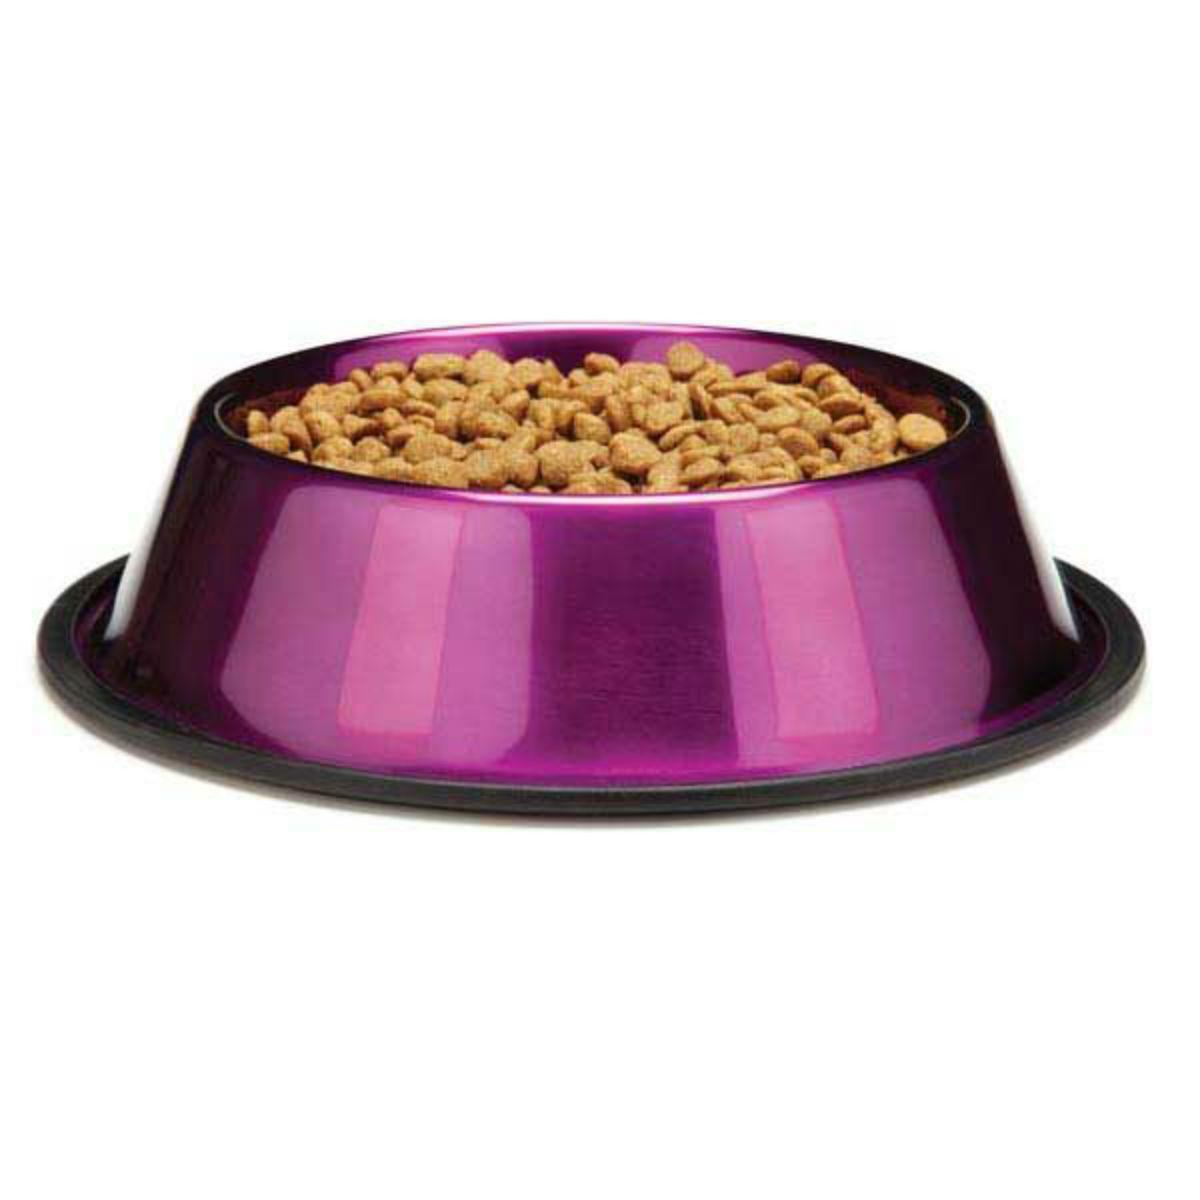 ProSelect DuraGloss Metallic Stainless Steel Dog Bowl - Ruby